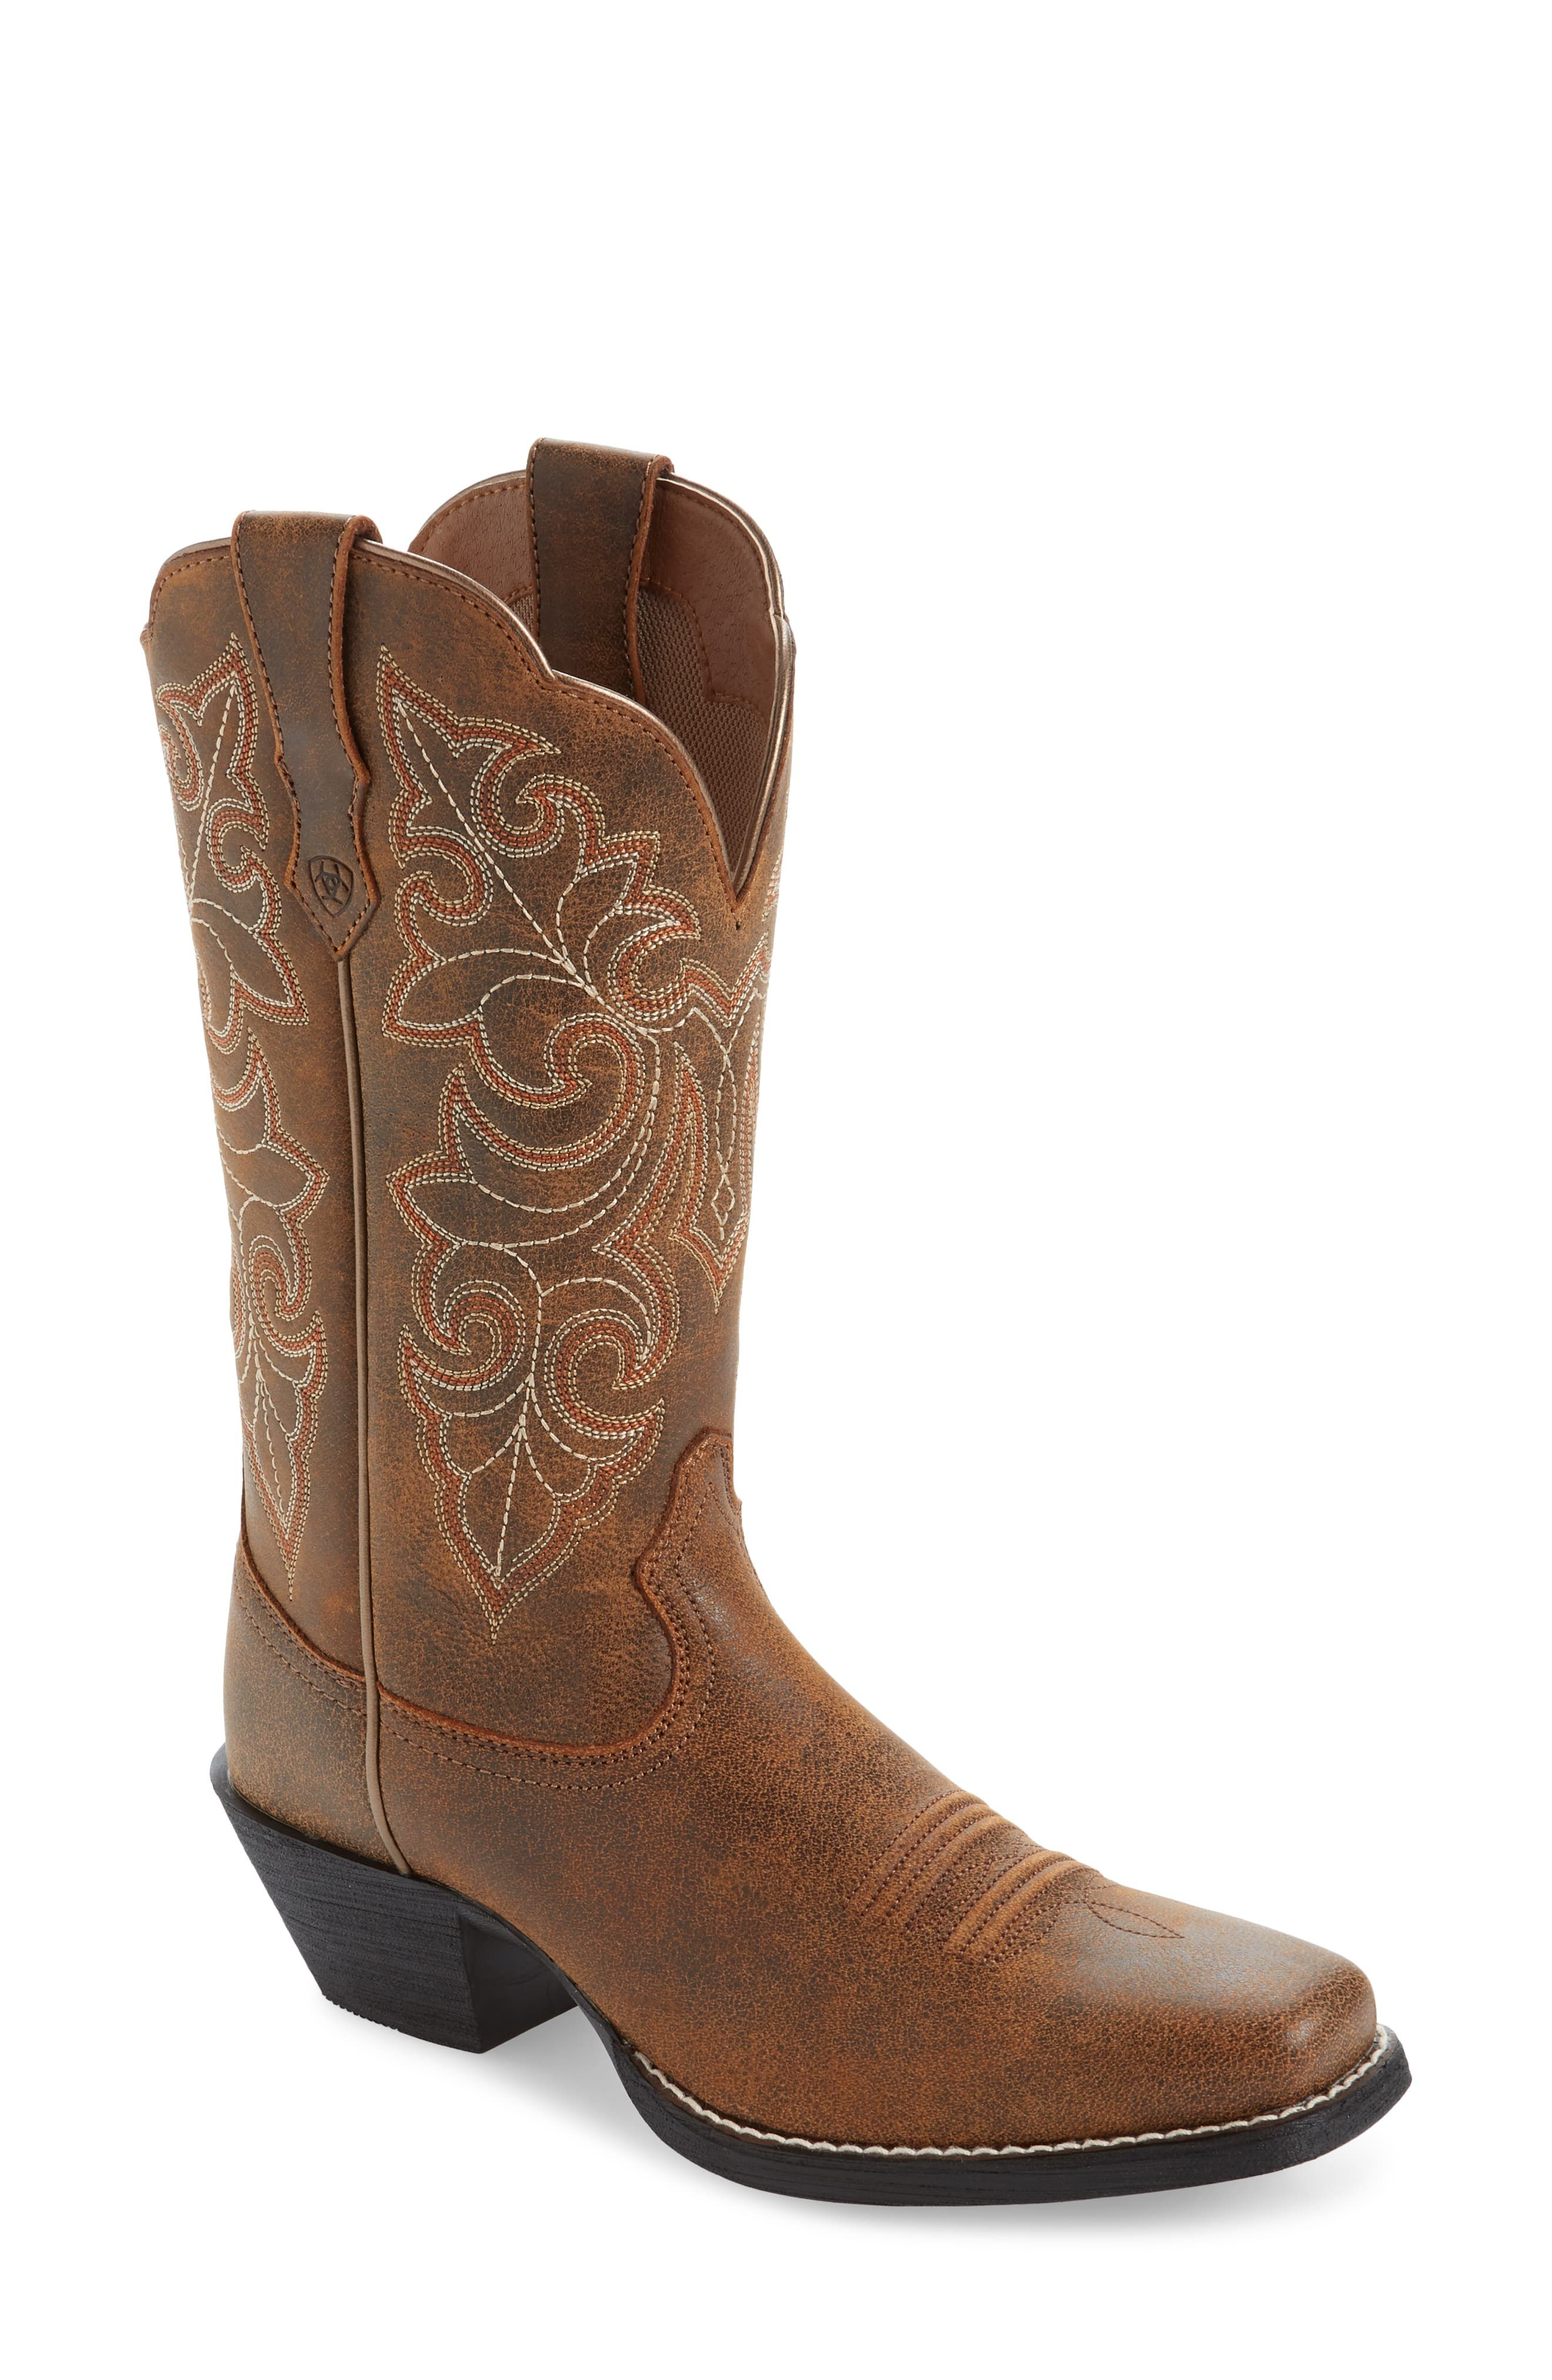 Western boots, Boots, Cowgirl boots